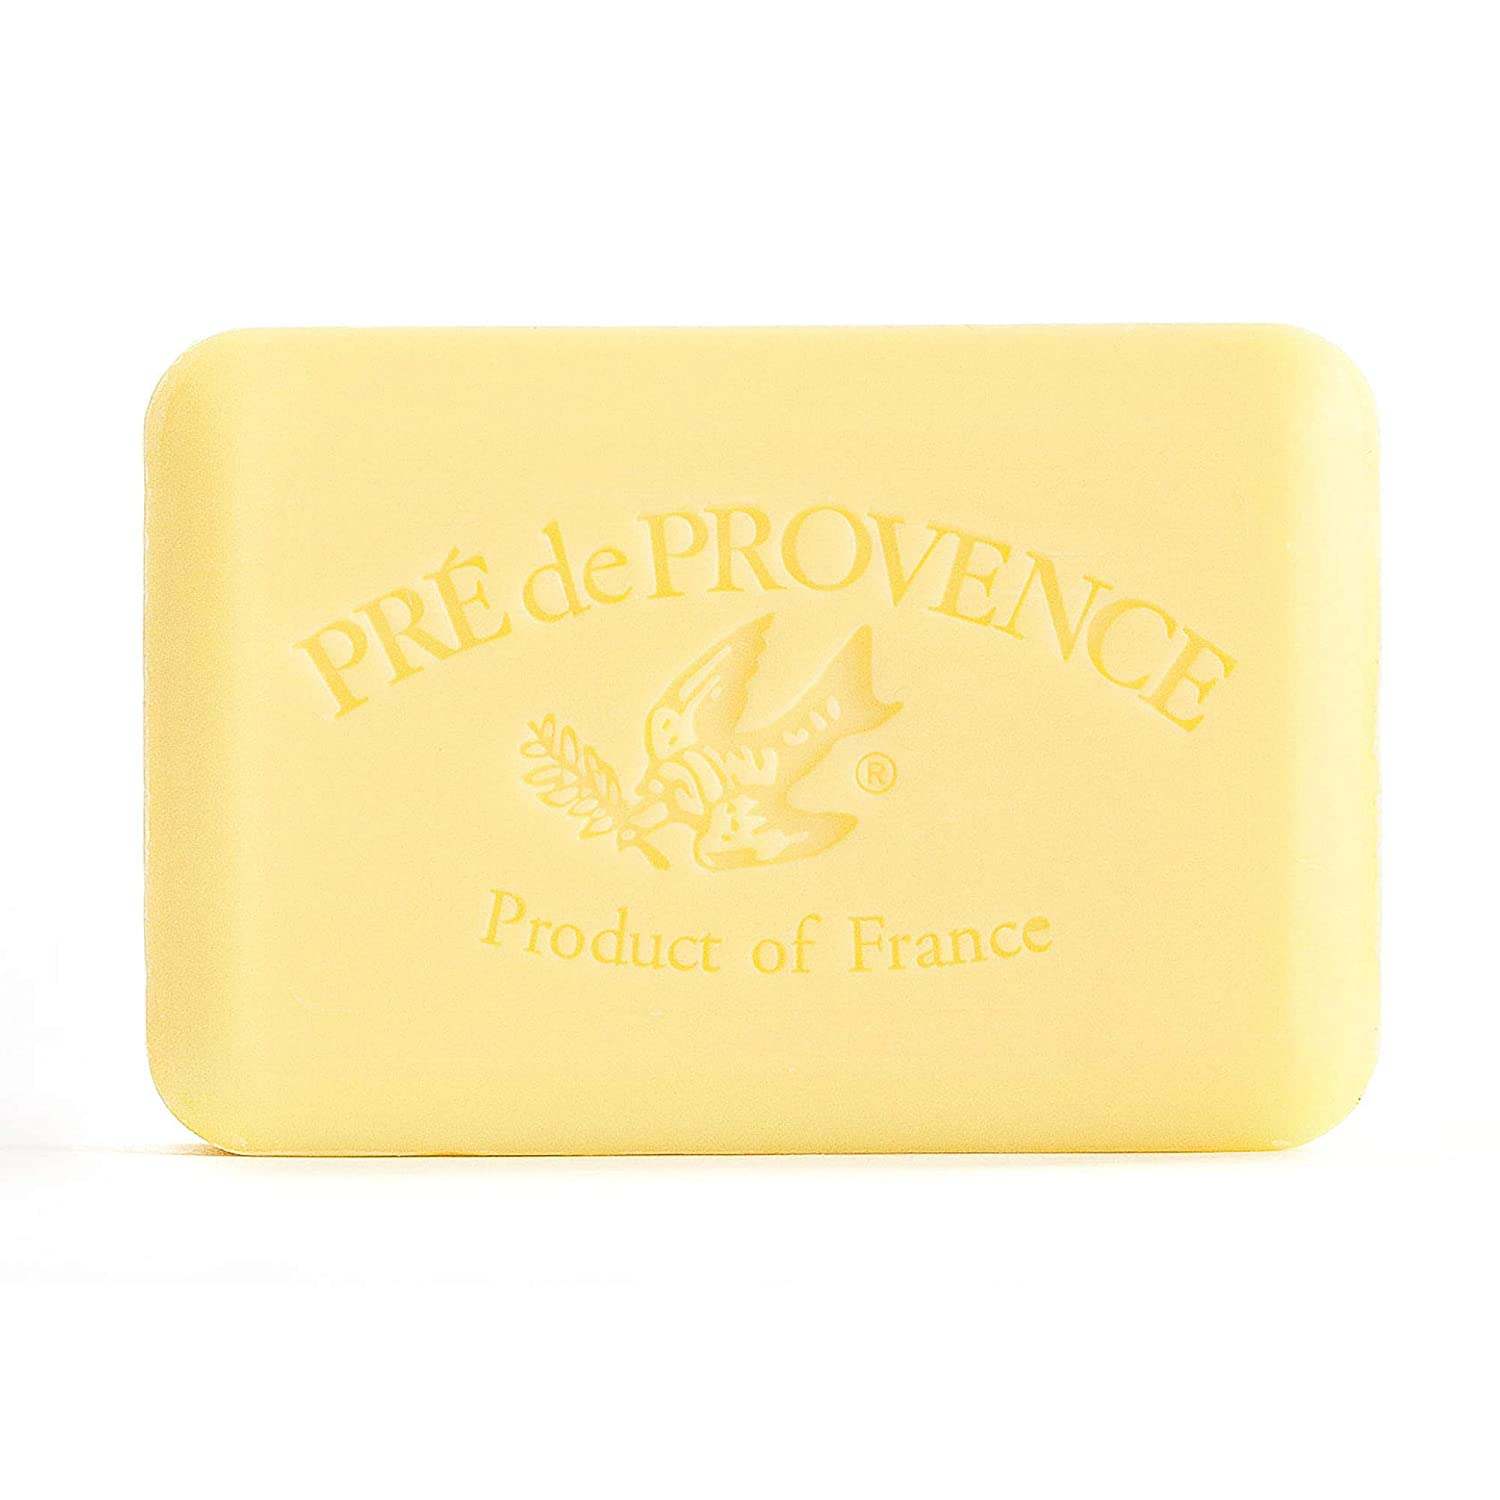 Pre de Provence Artisanal French Soap Bar Enriched with Shea Butter, Freesia, 250 Gram